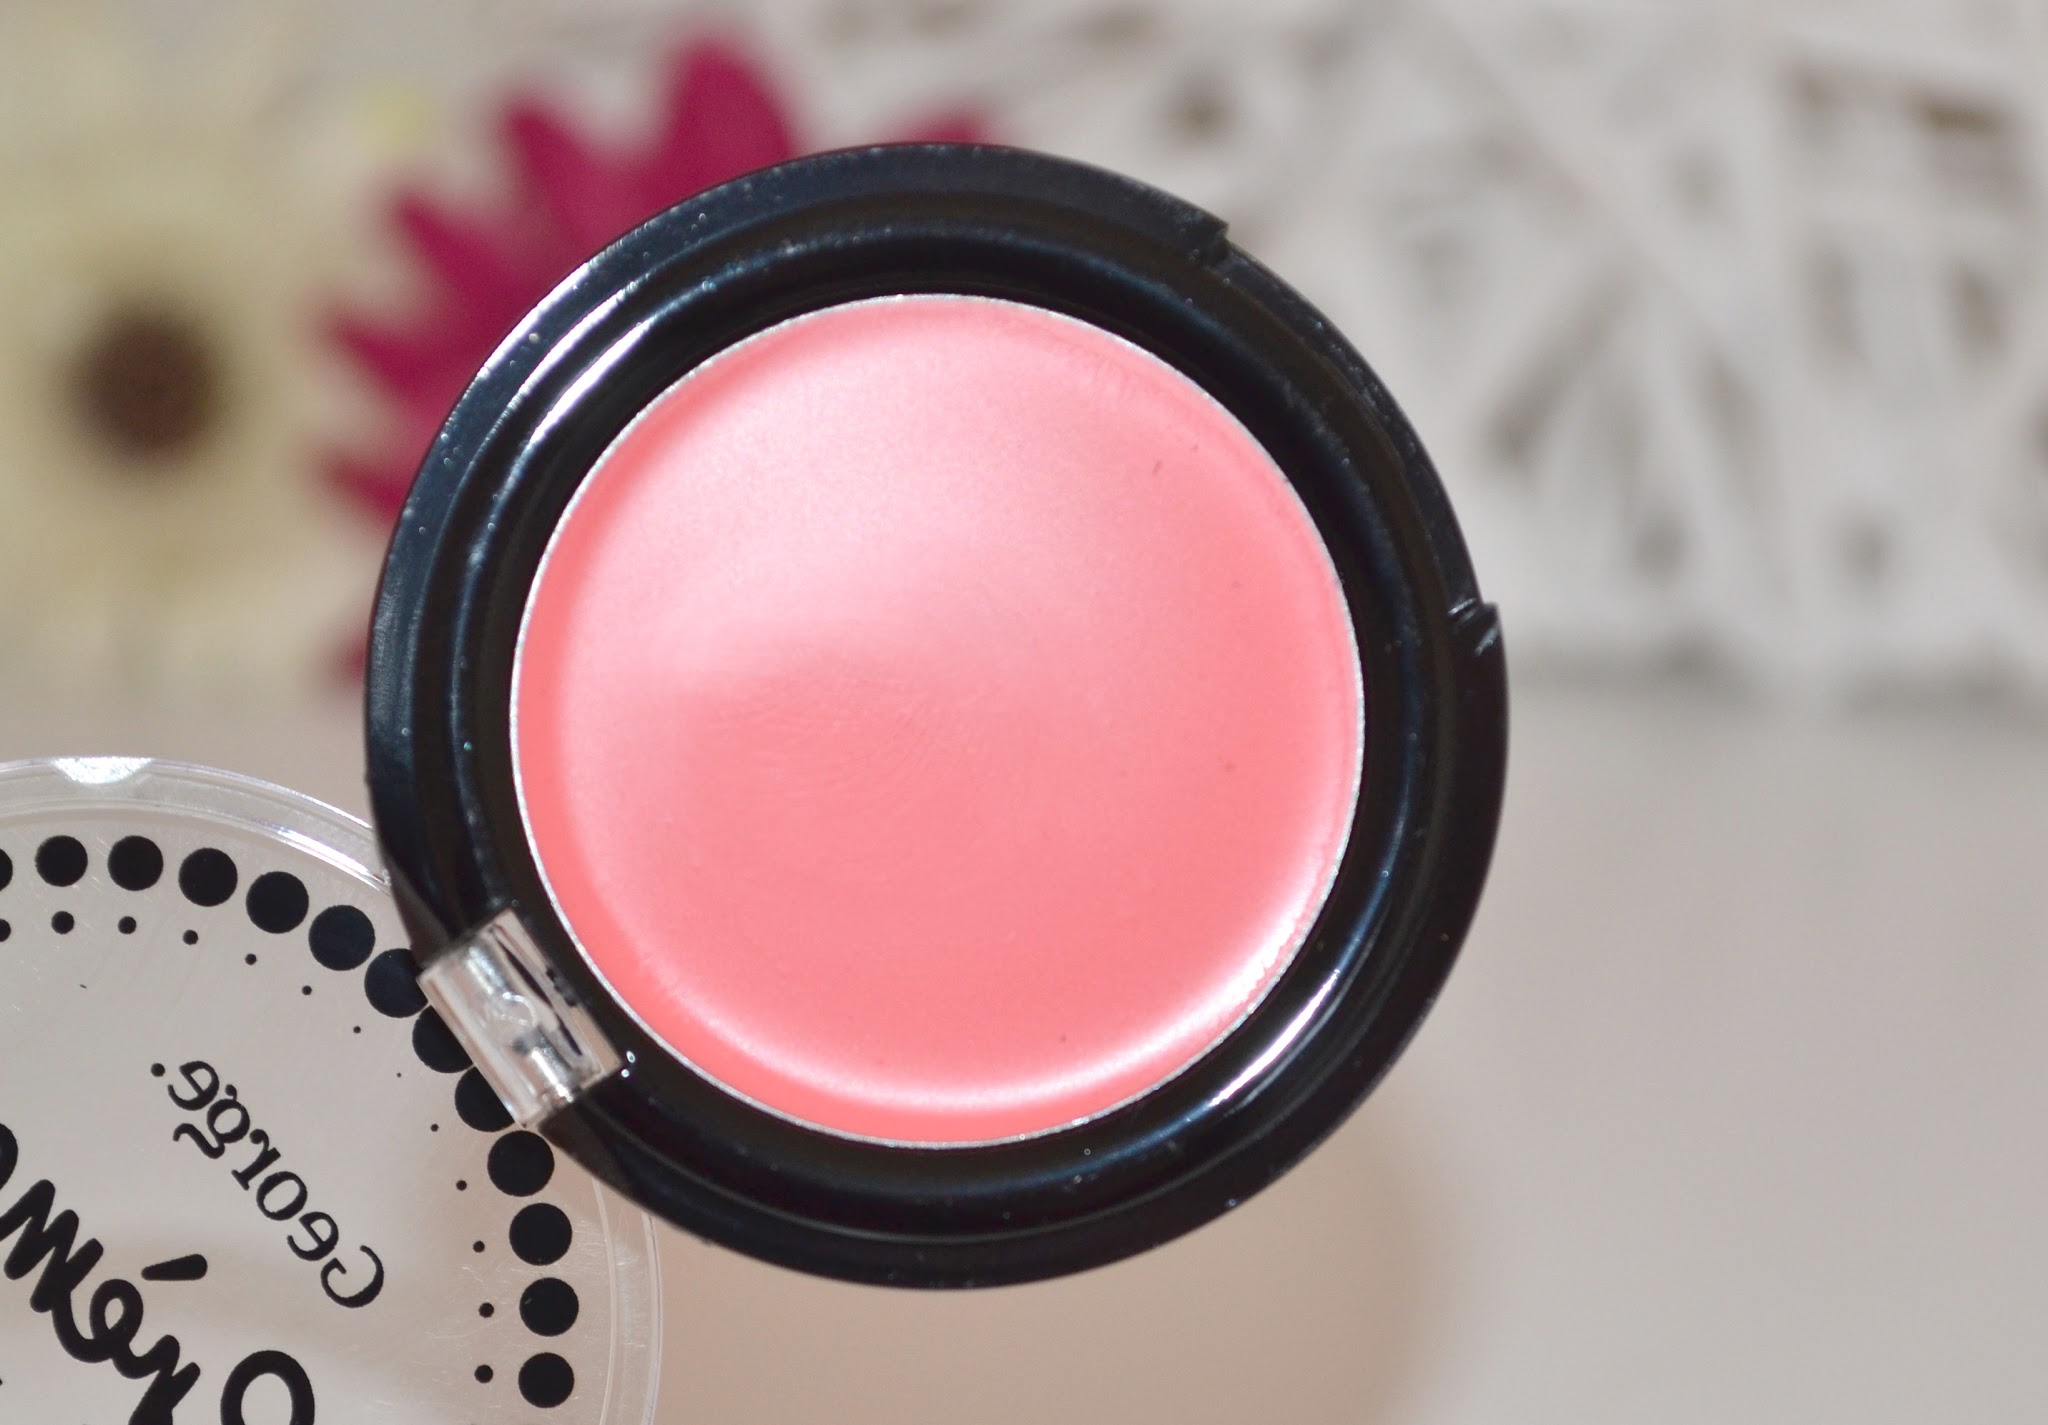 george cream blush, george creme blush coral, asda